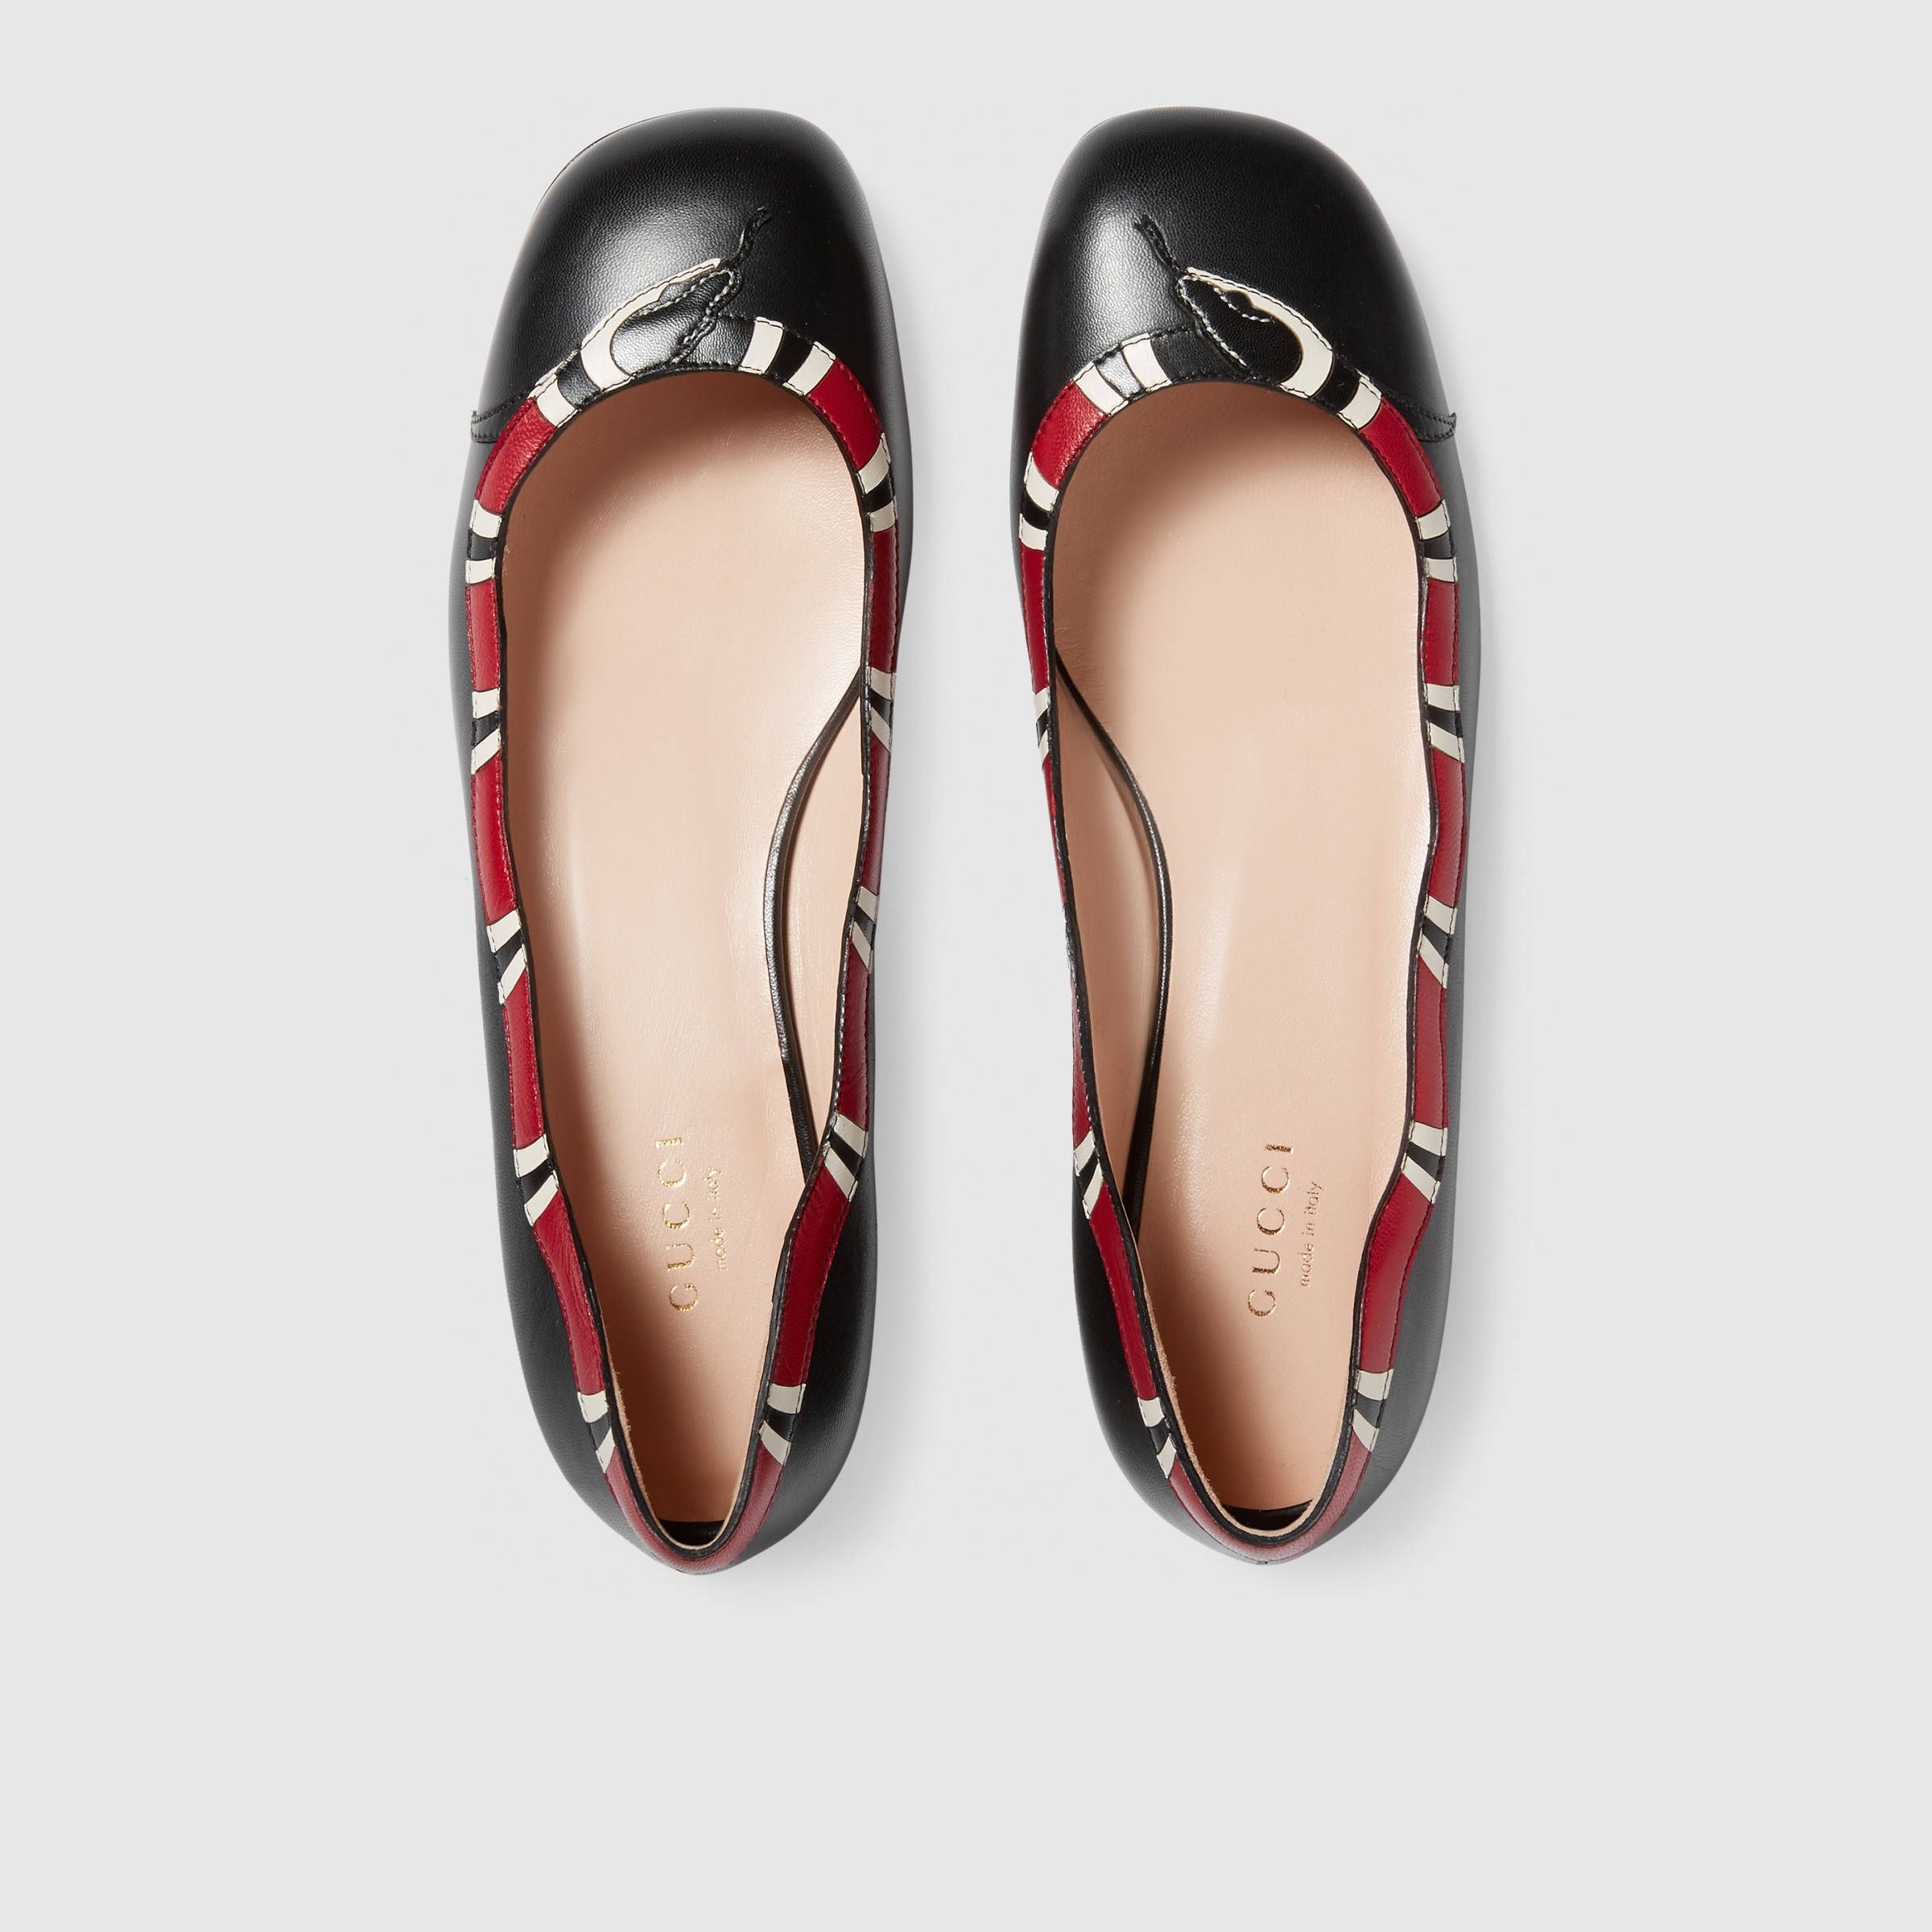 cheaper b58c3 5252f Leather snake ballet flat - Gucci Women's Ballerina Flats ...